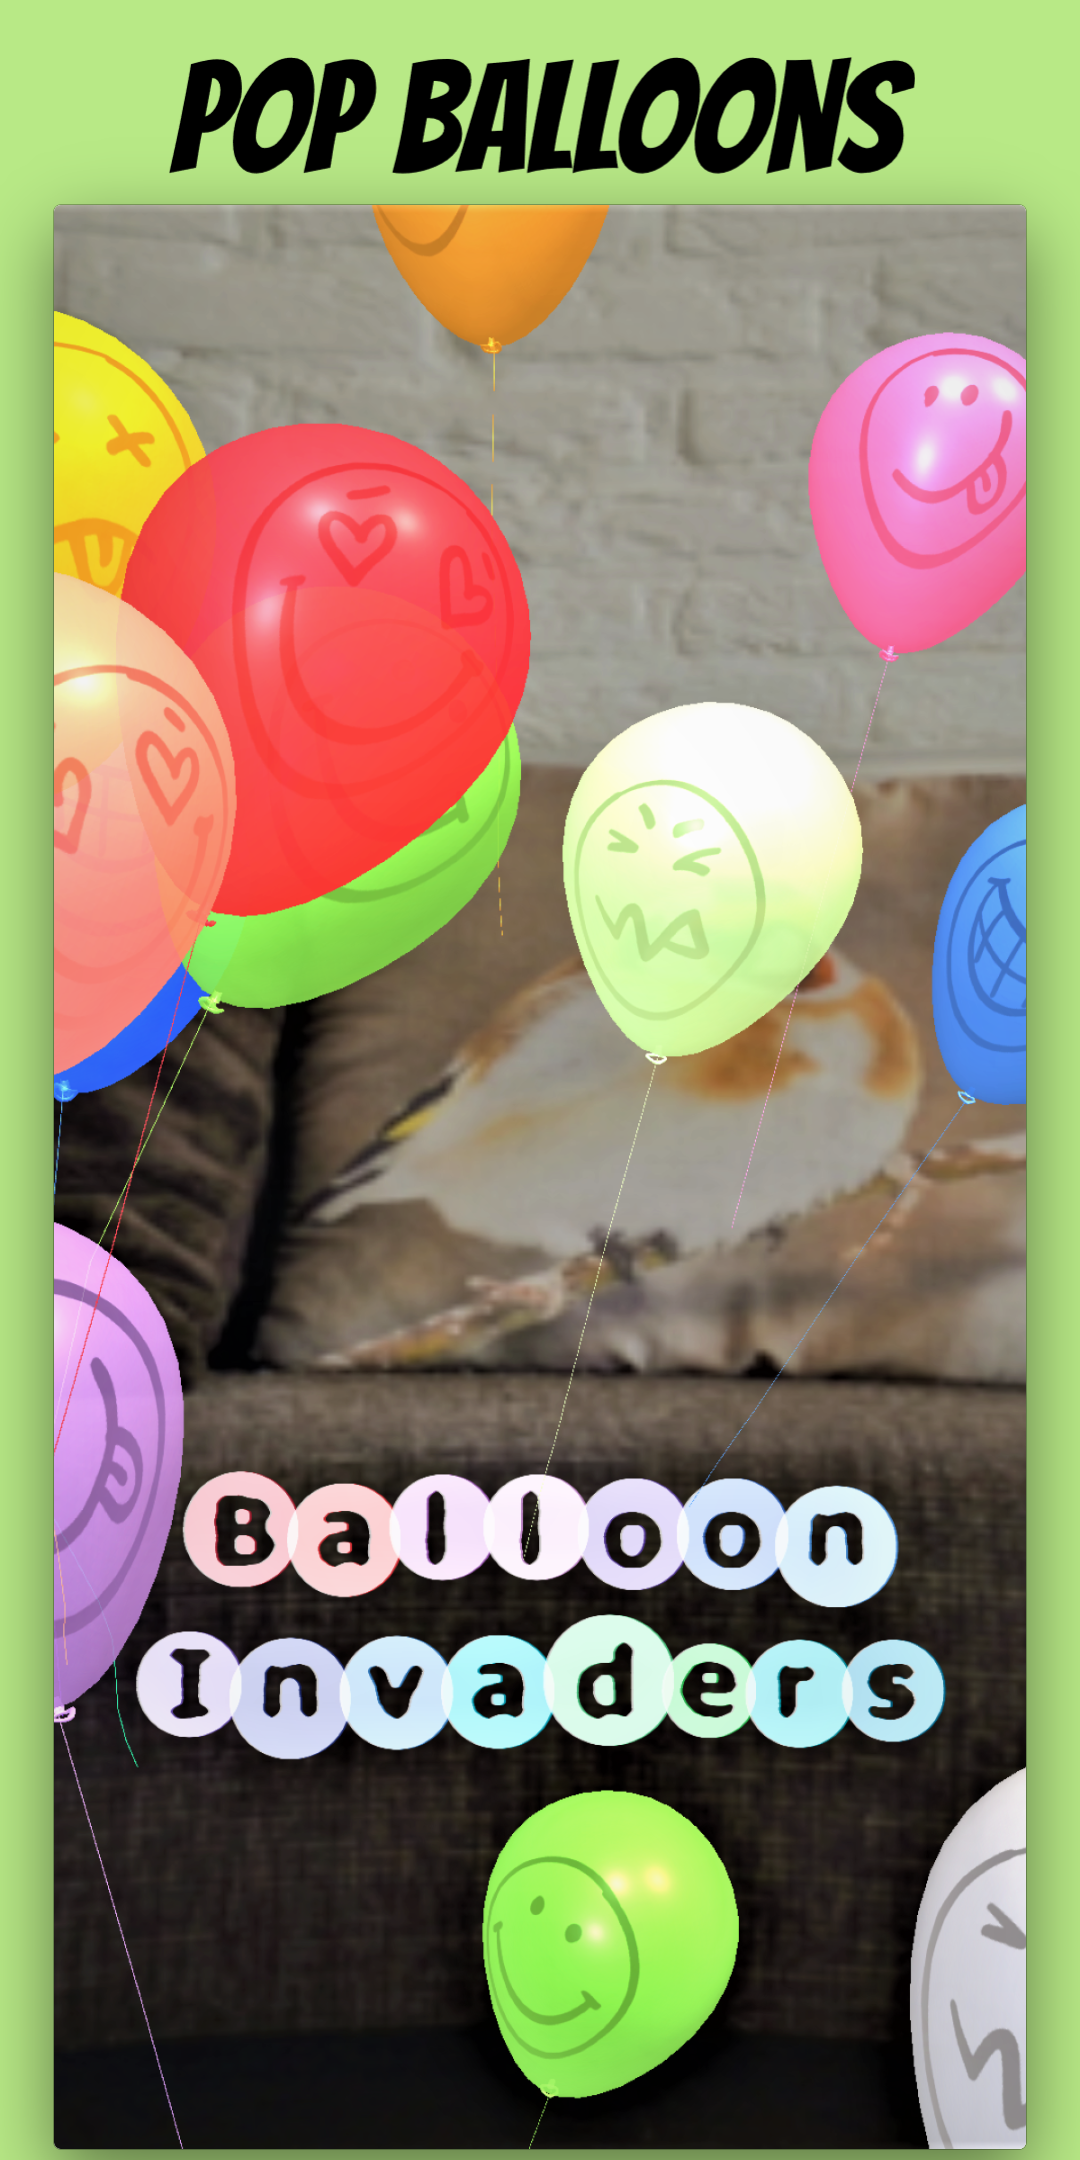 Balloon Invaders: Pop Balloons in AR